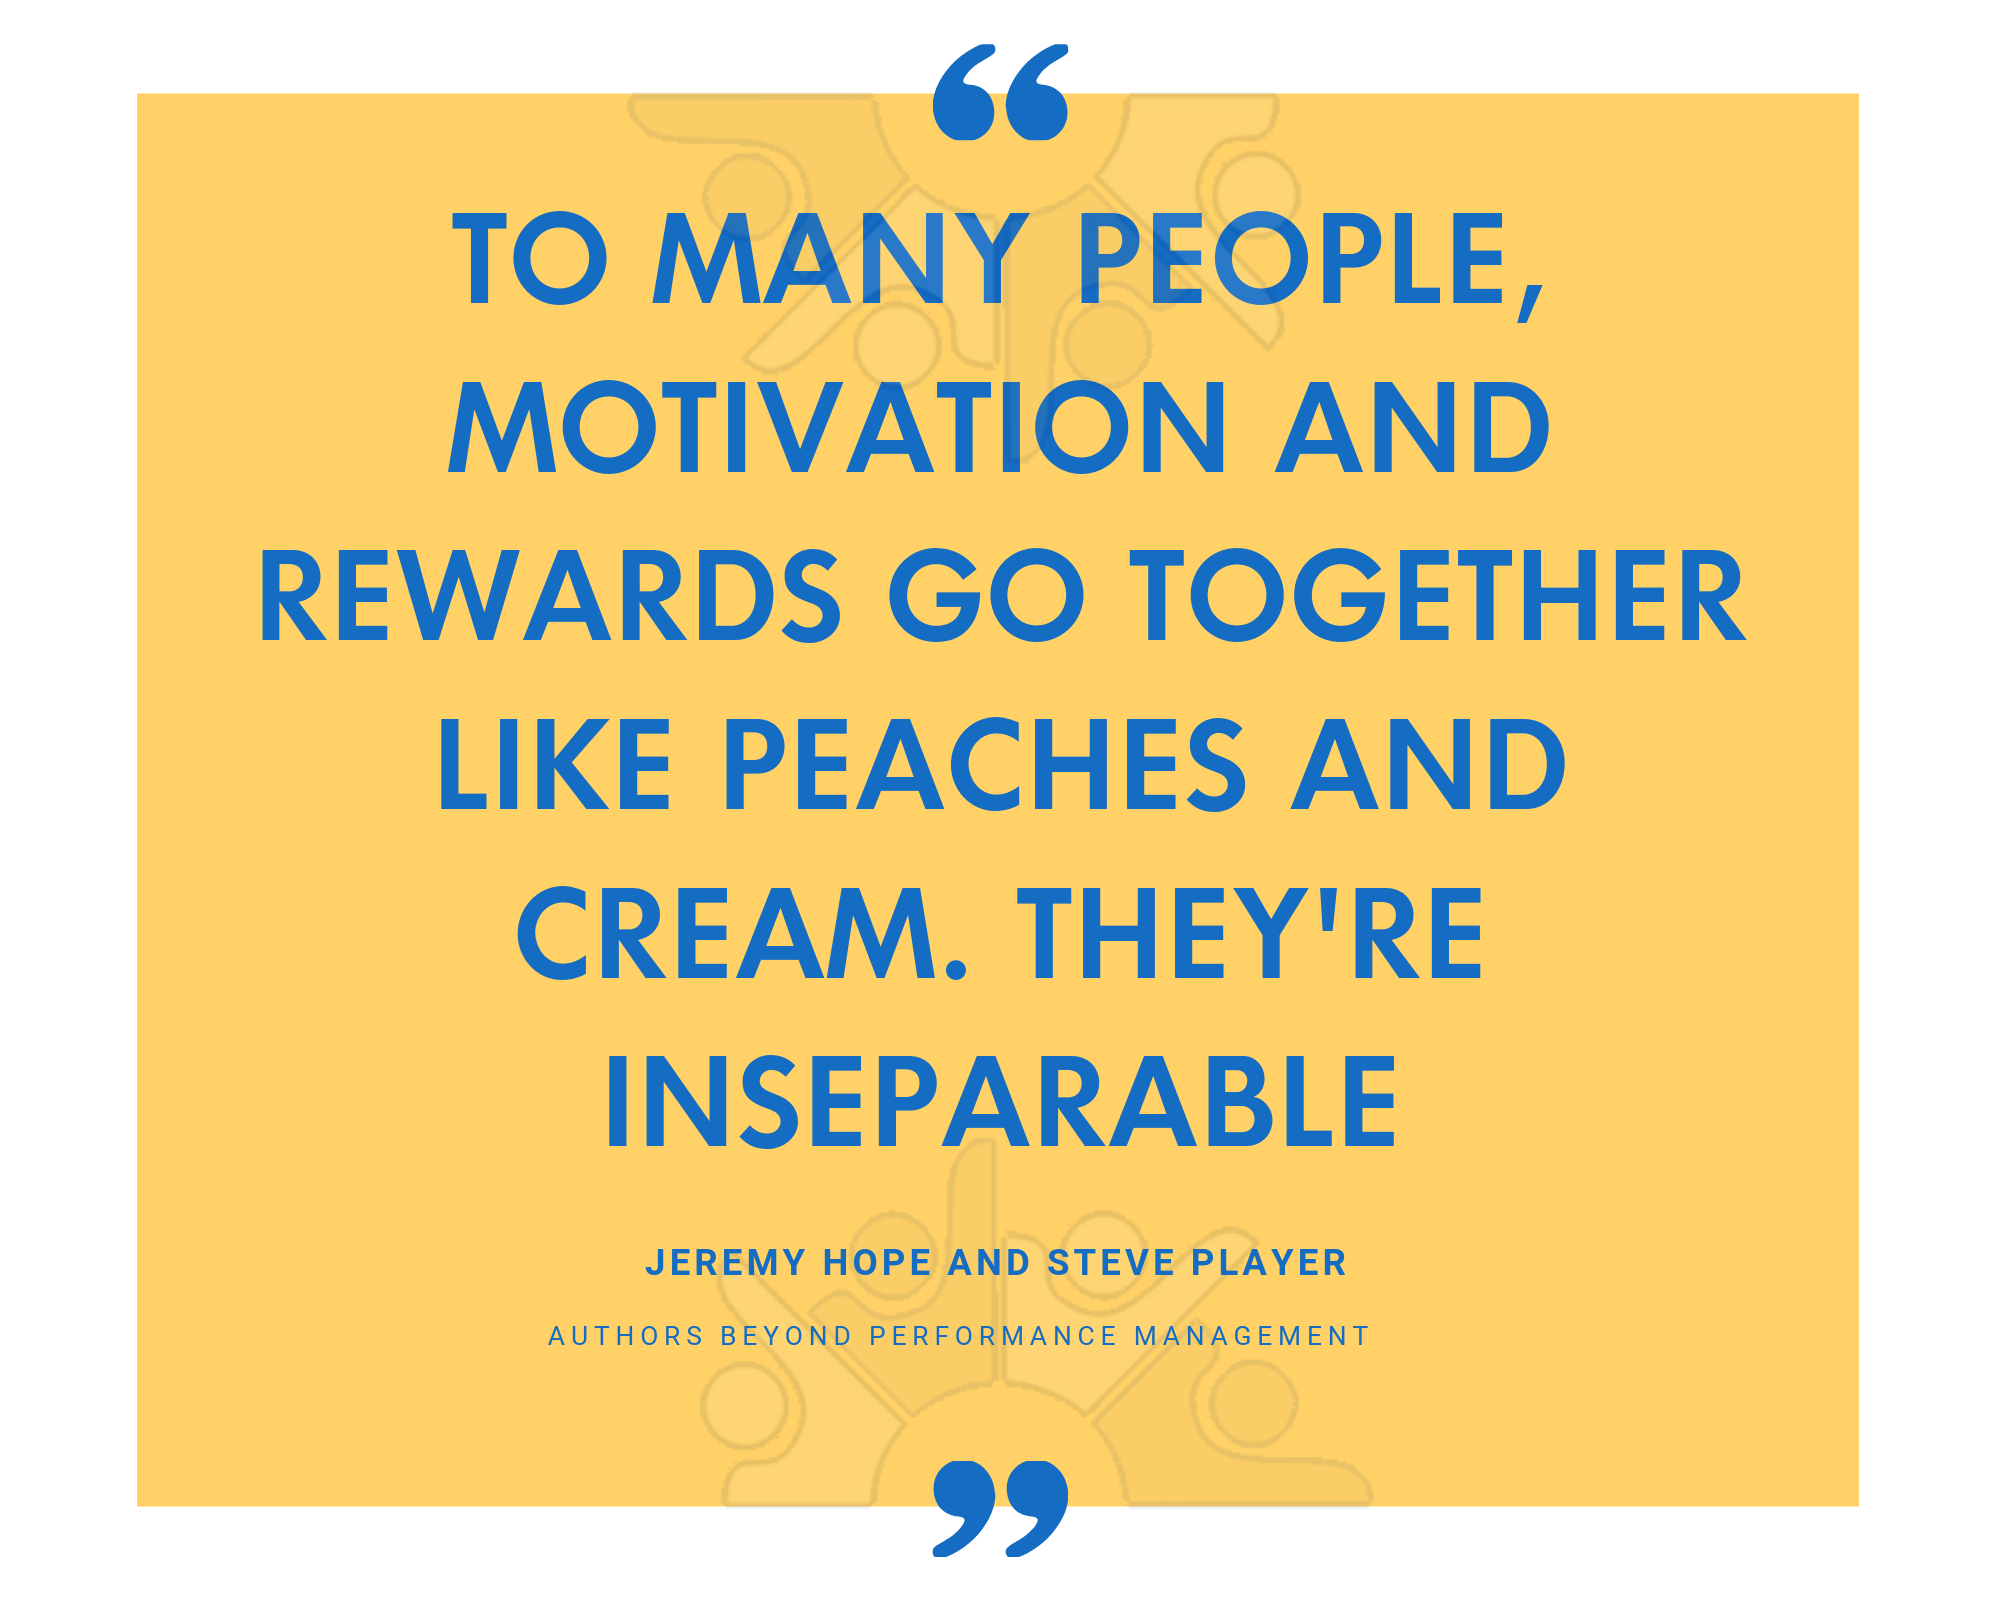 To many people, motivation and rewards go together like peaches and cream. Theyre inseparable